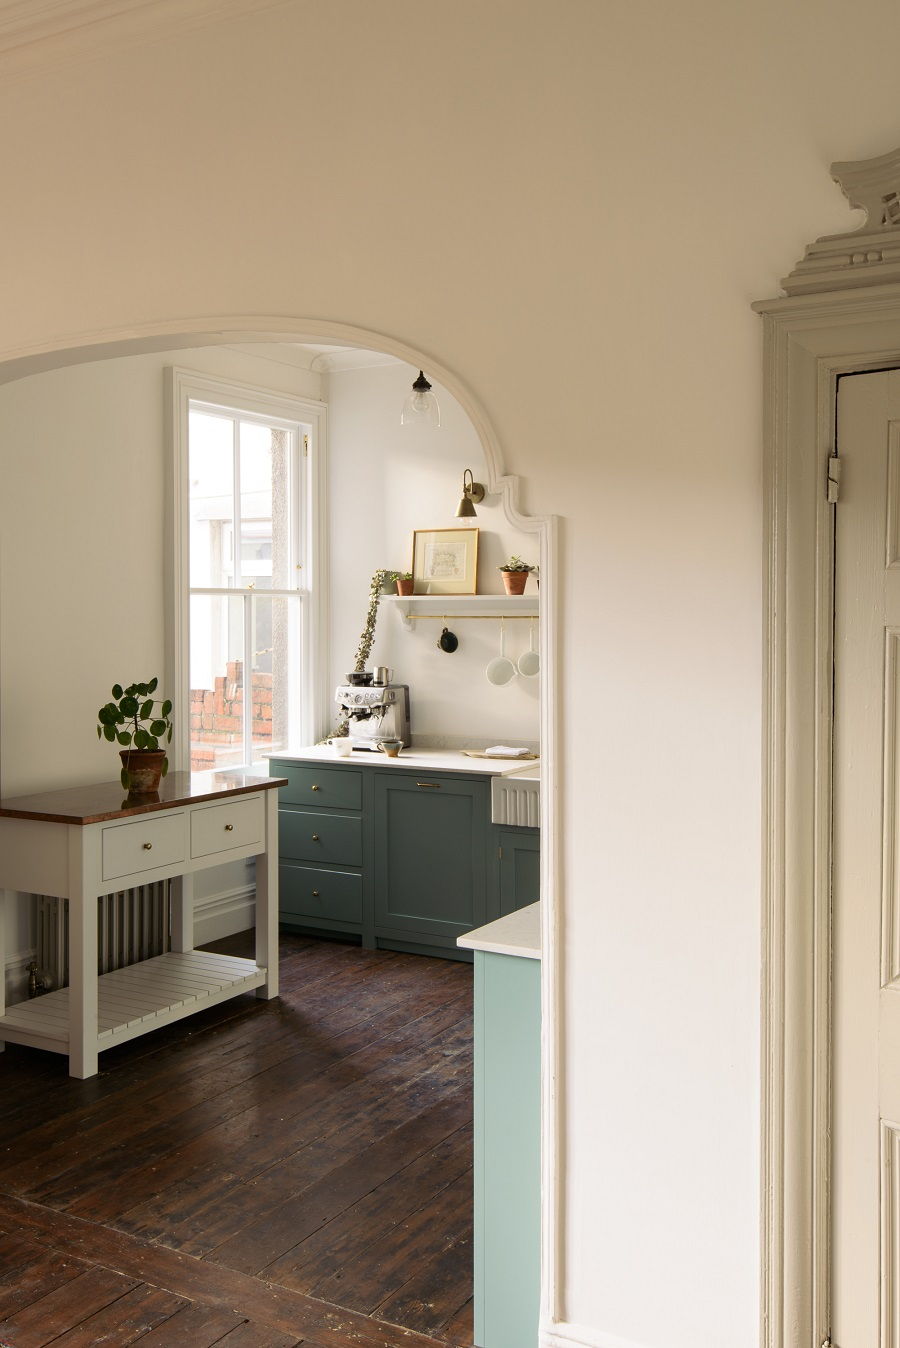 A Delightfully Simple Kitchen in an Edwardian Villa That Evokes a Different Era